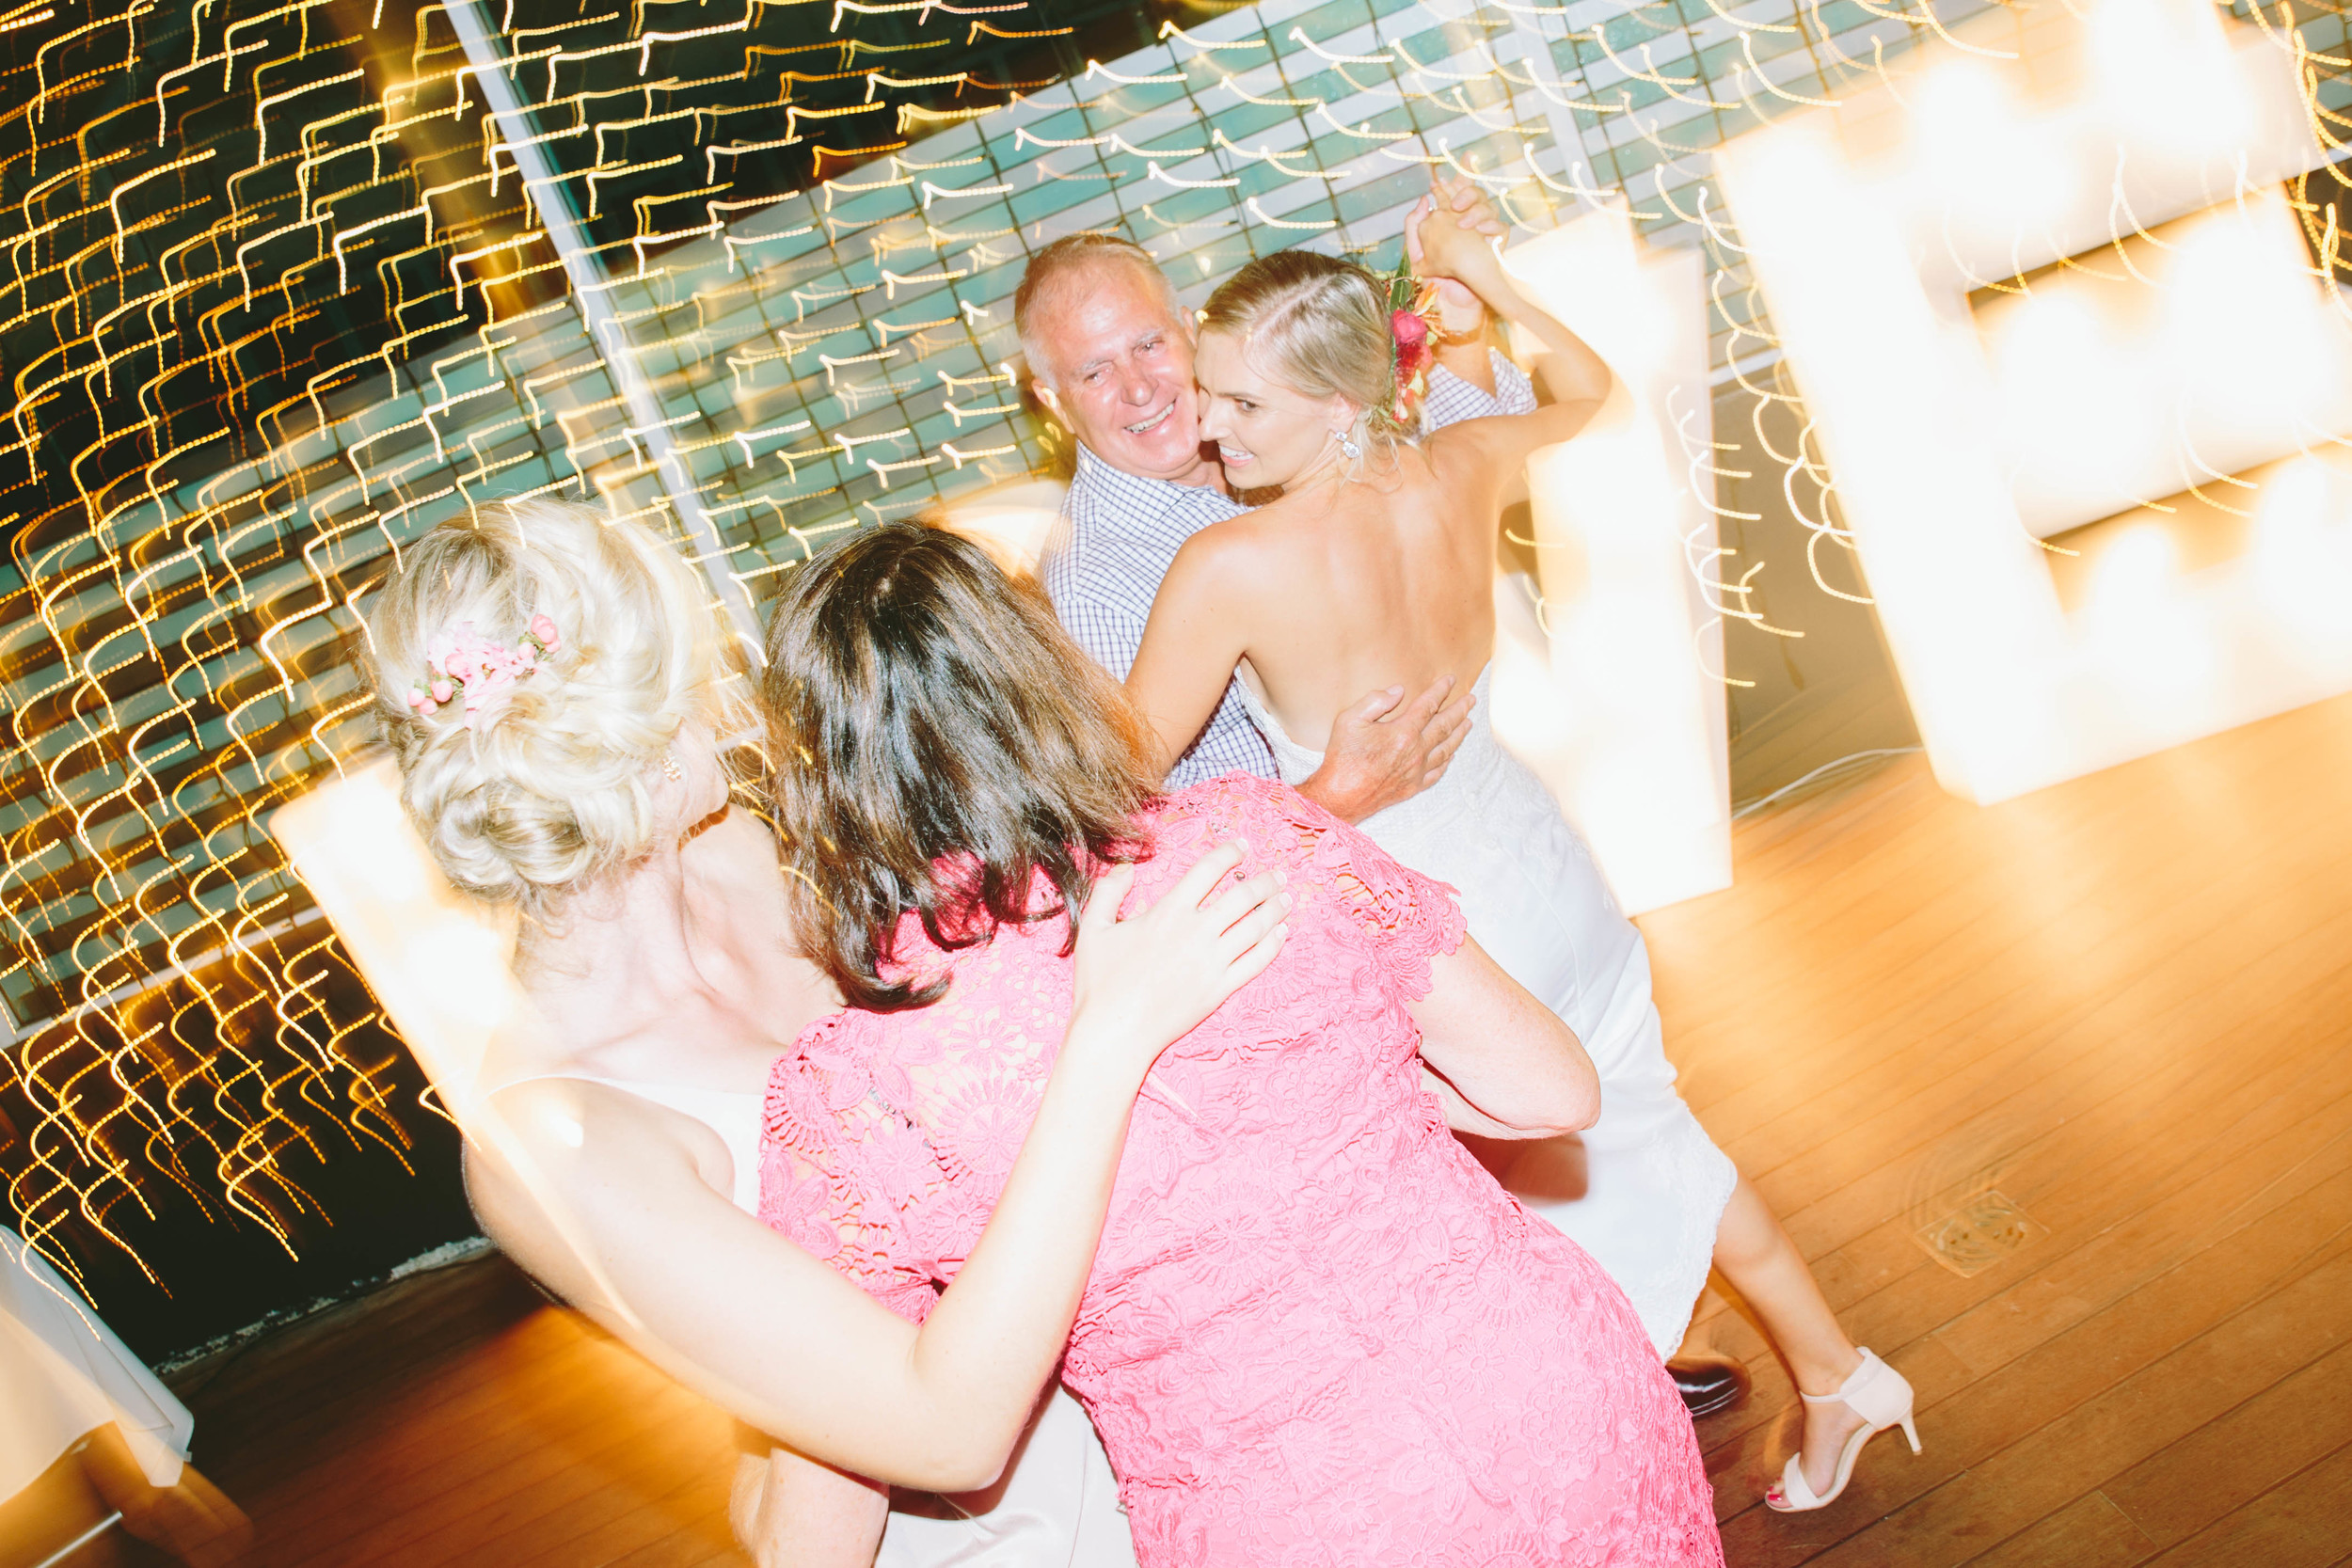 Courtney + Chris_Dancefloor-8928.jpg